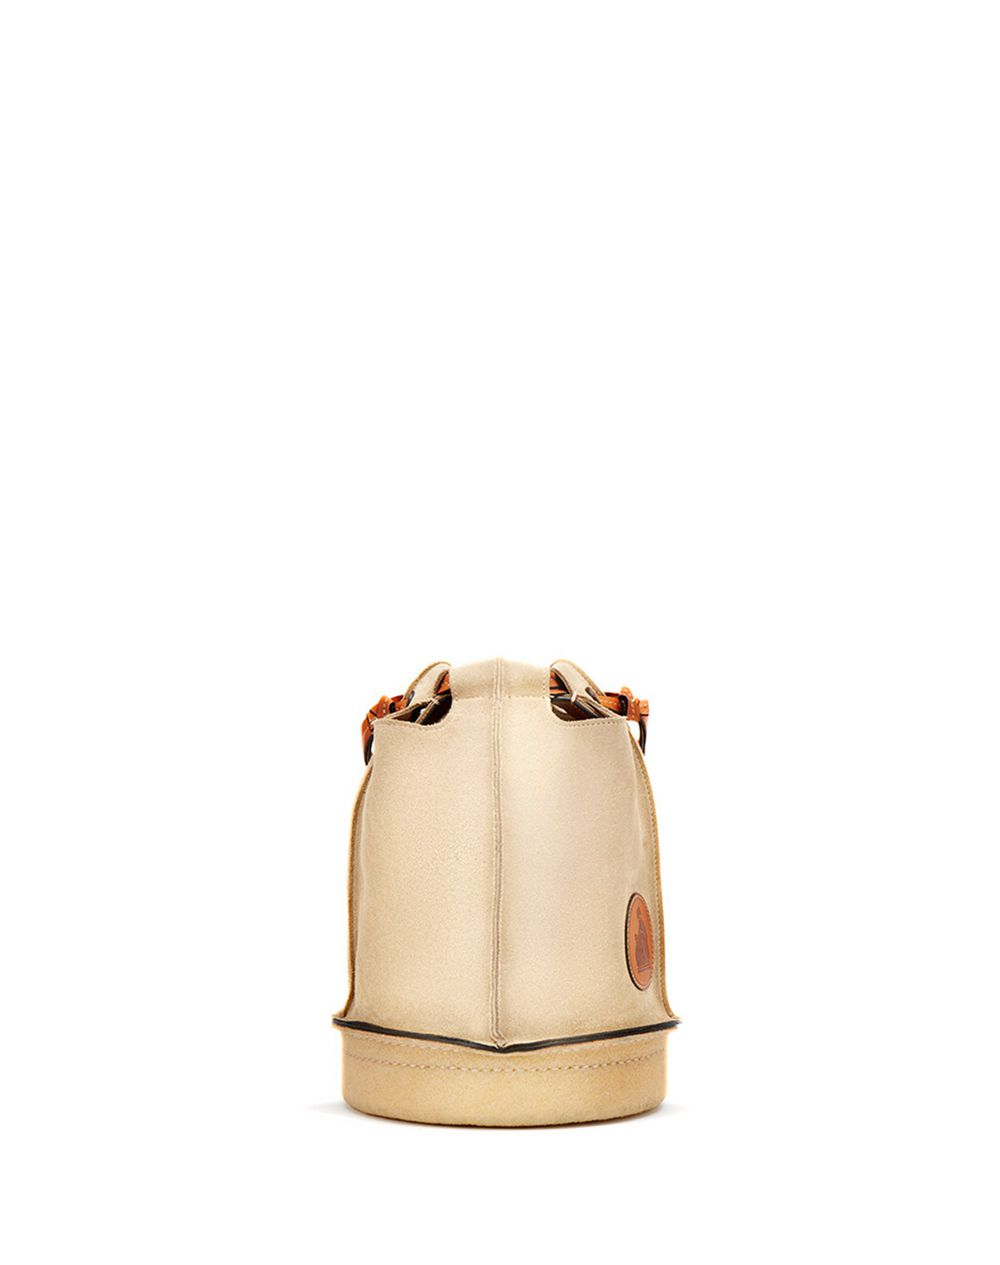 BUCKET BAG - Lanvin